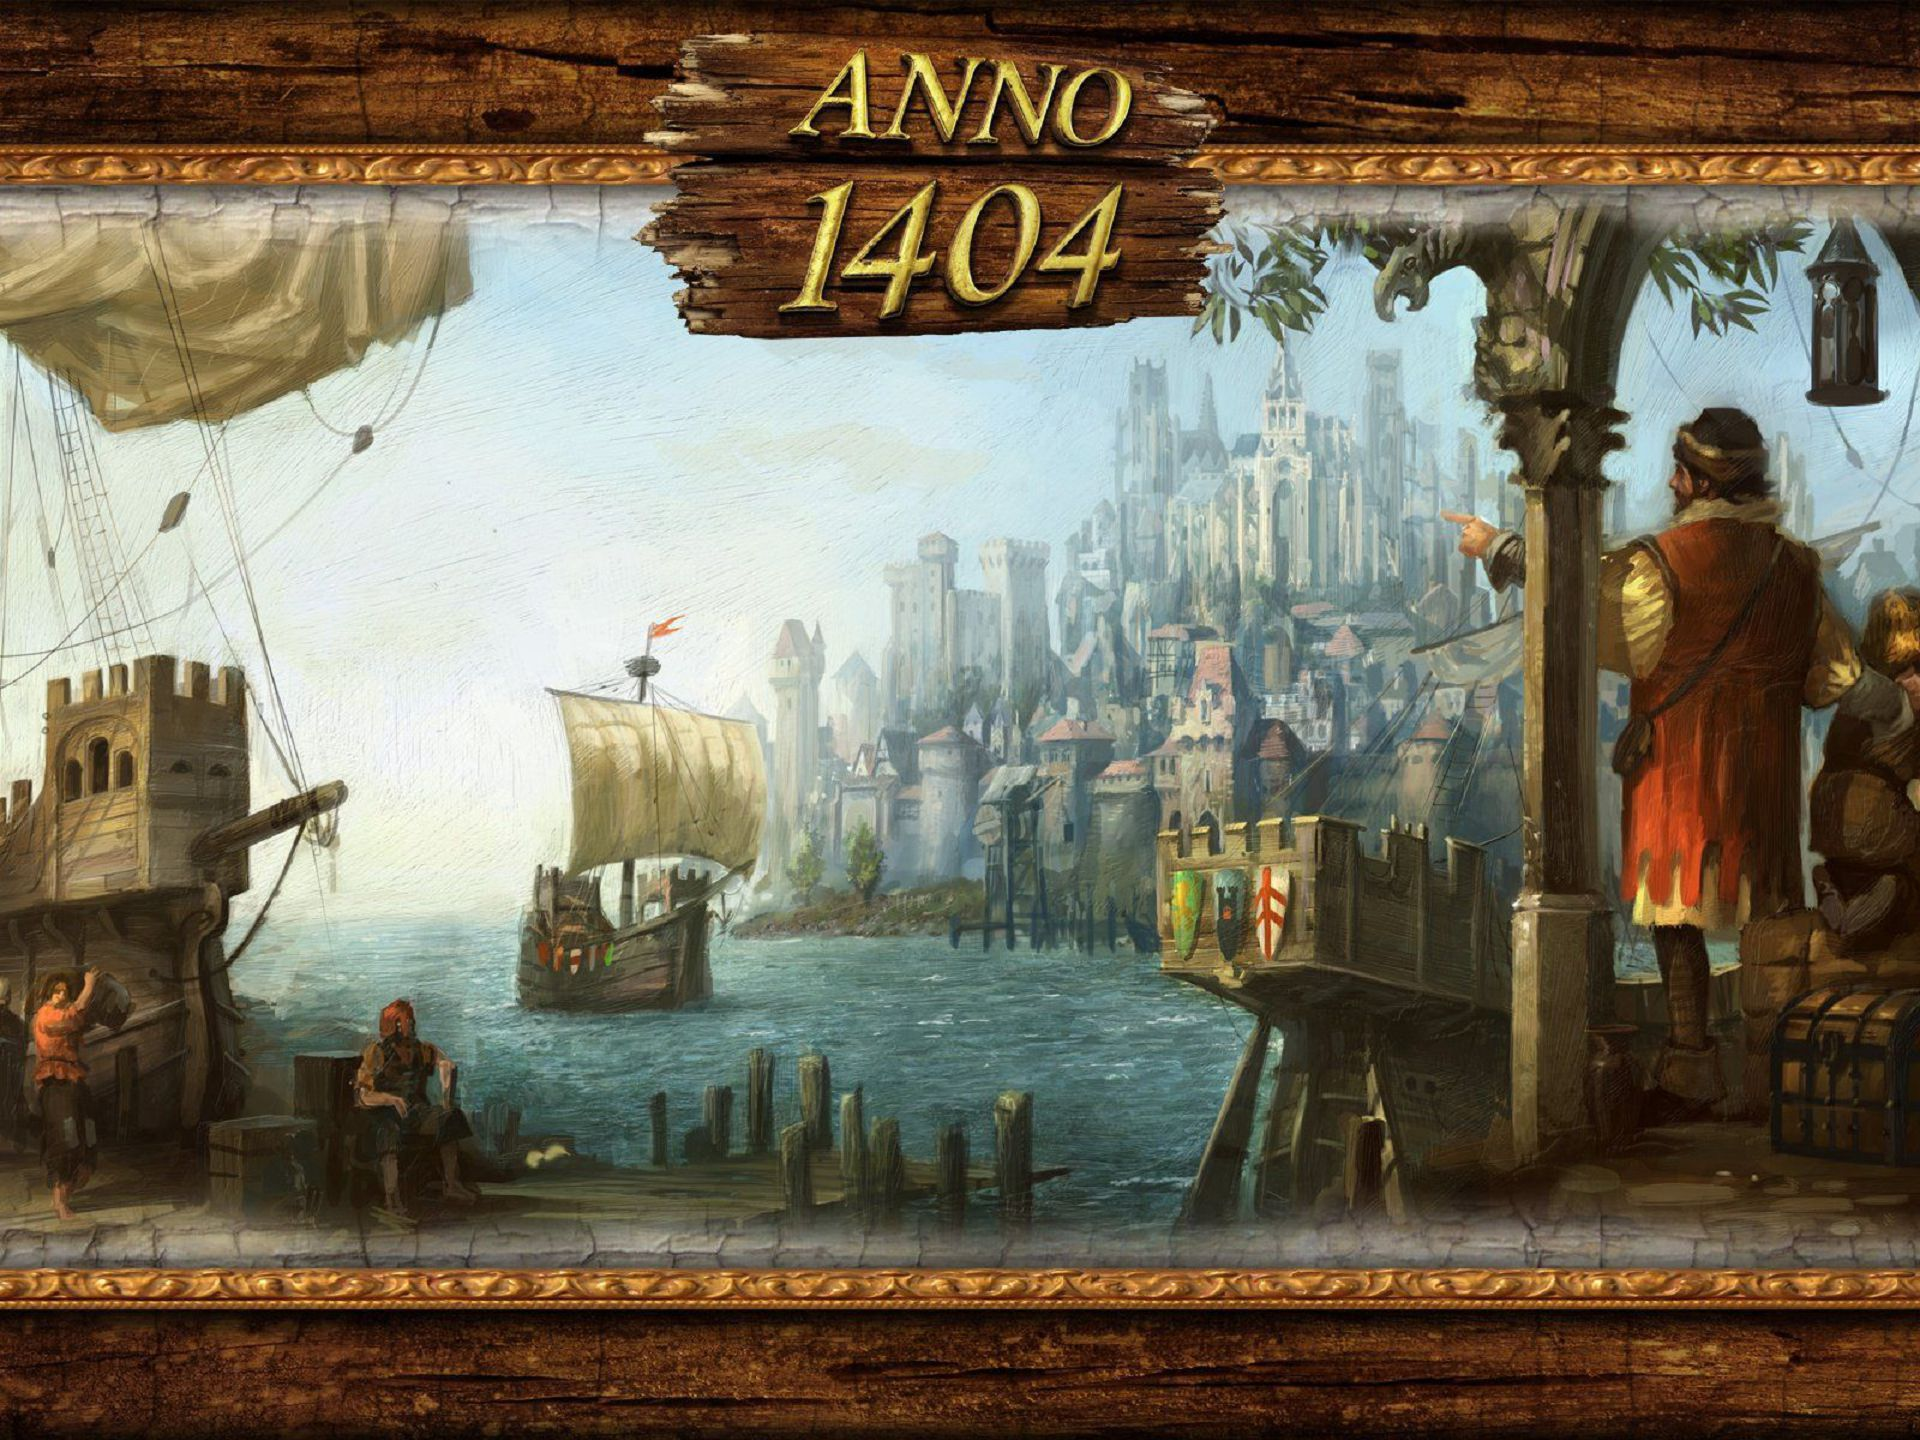 Anno 1404 Beautiful